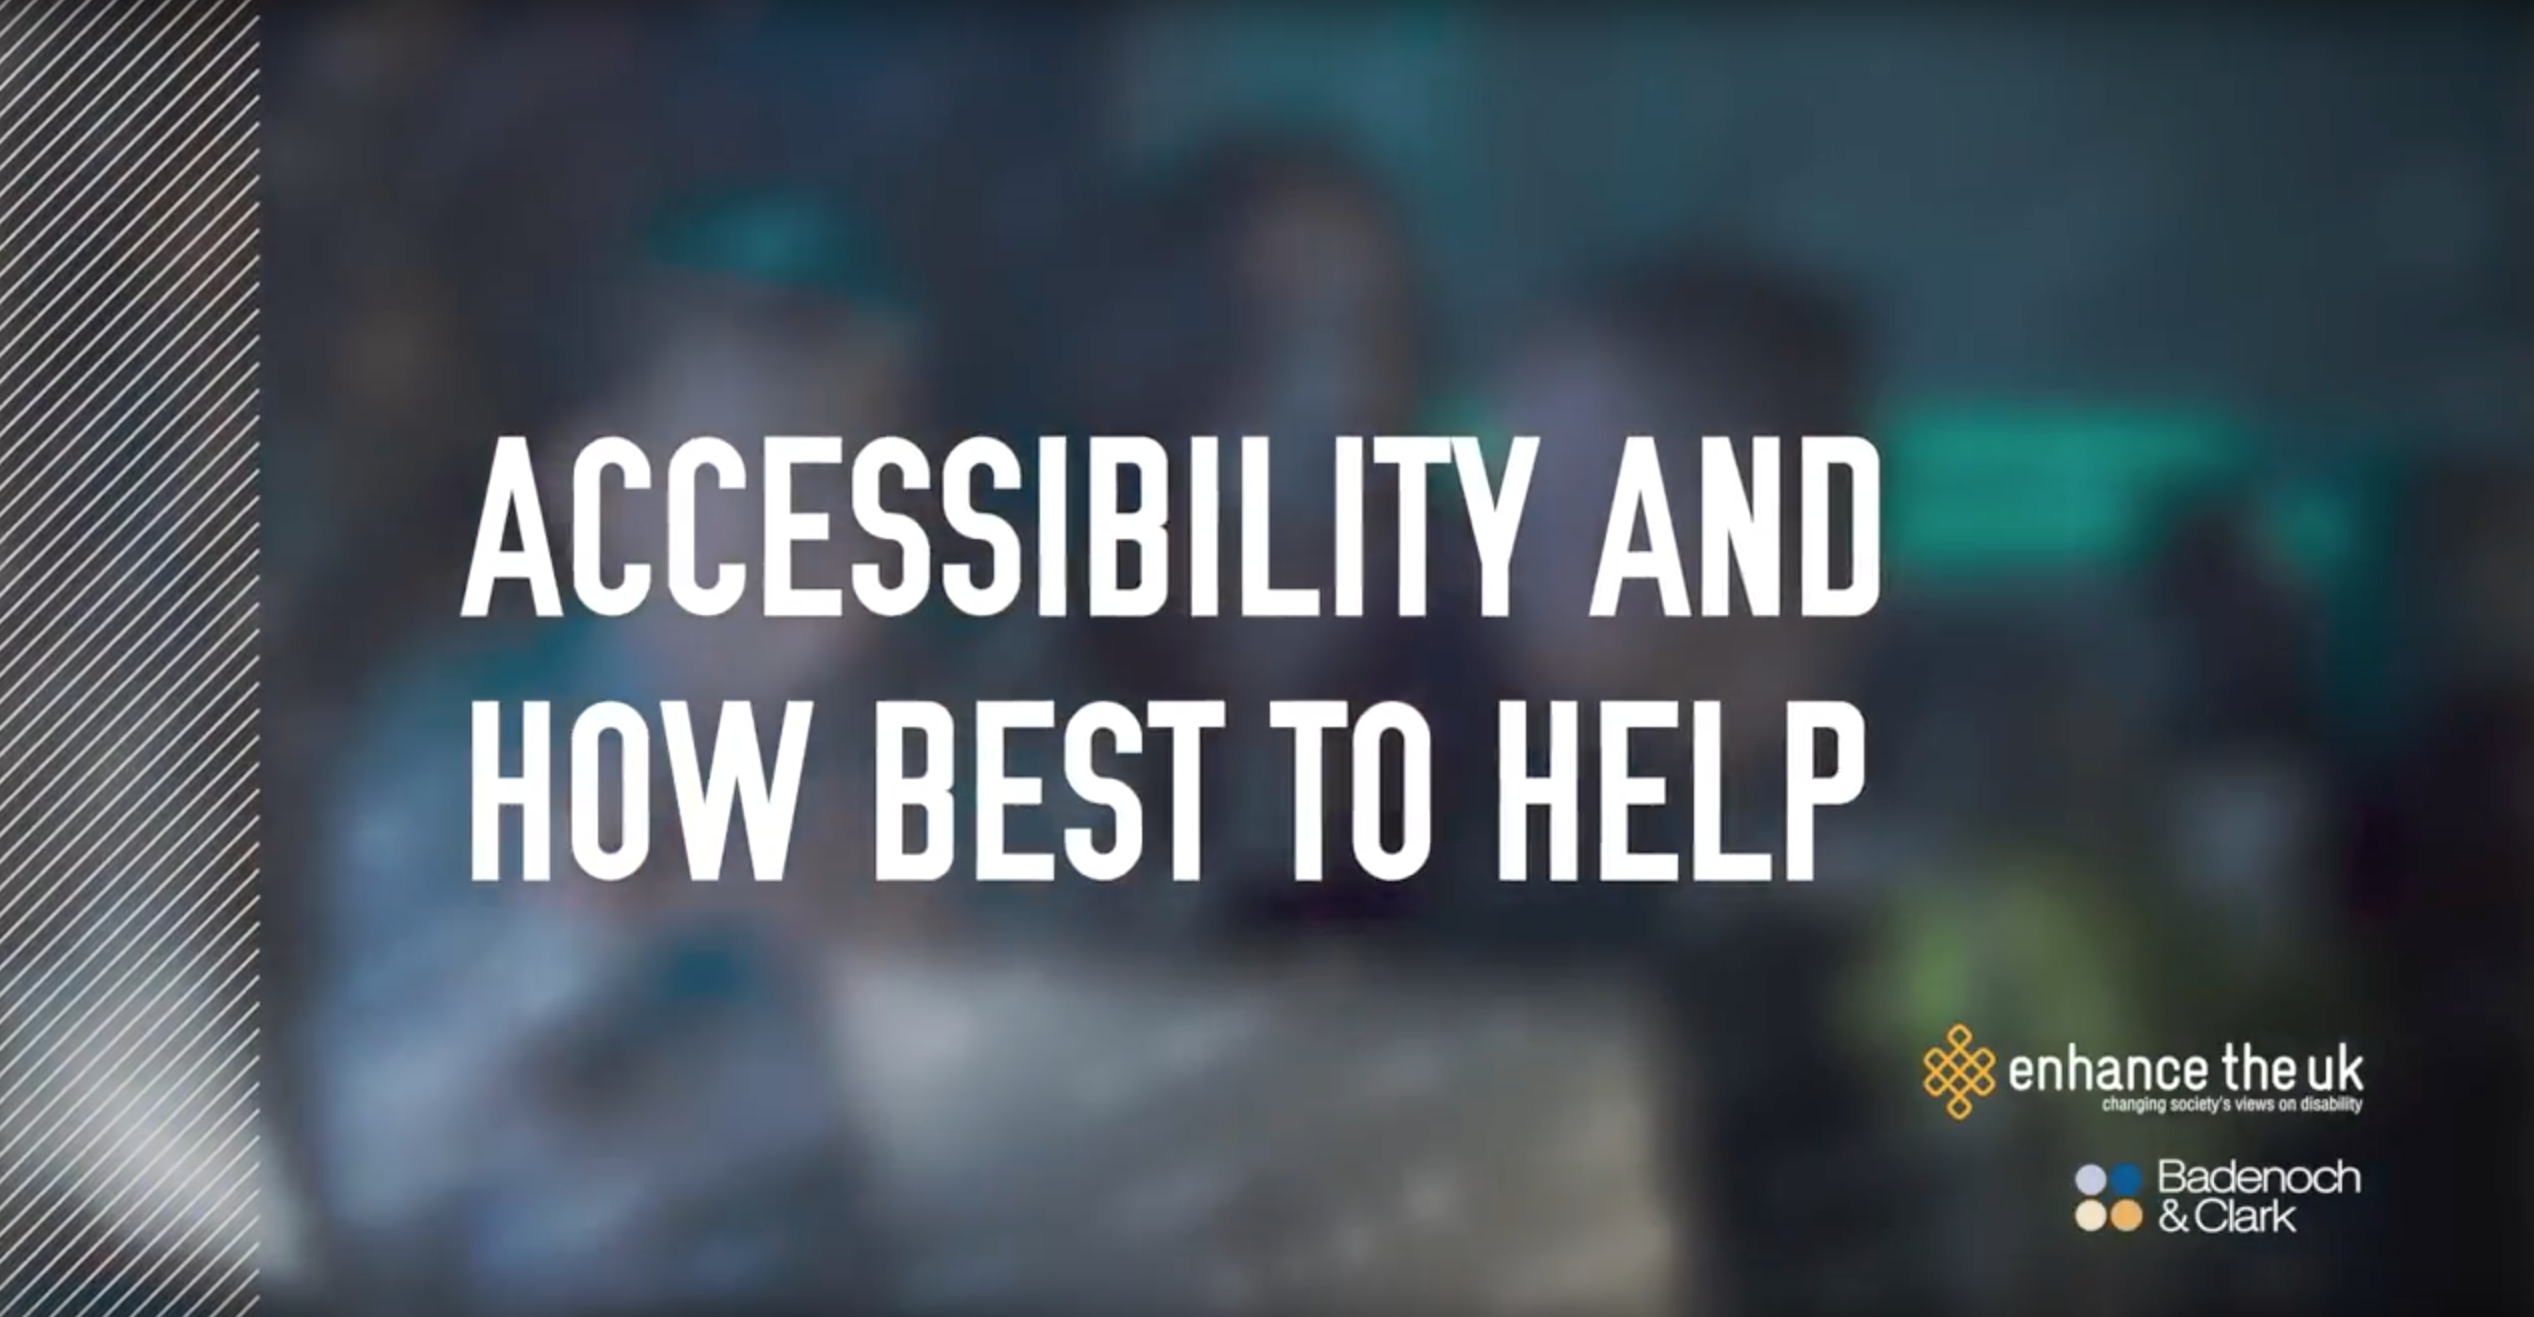 text reading 'Accessibility and how best to help'